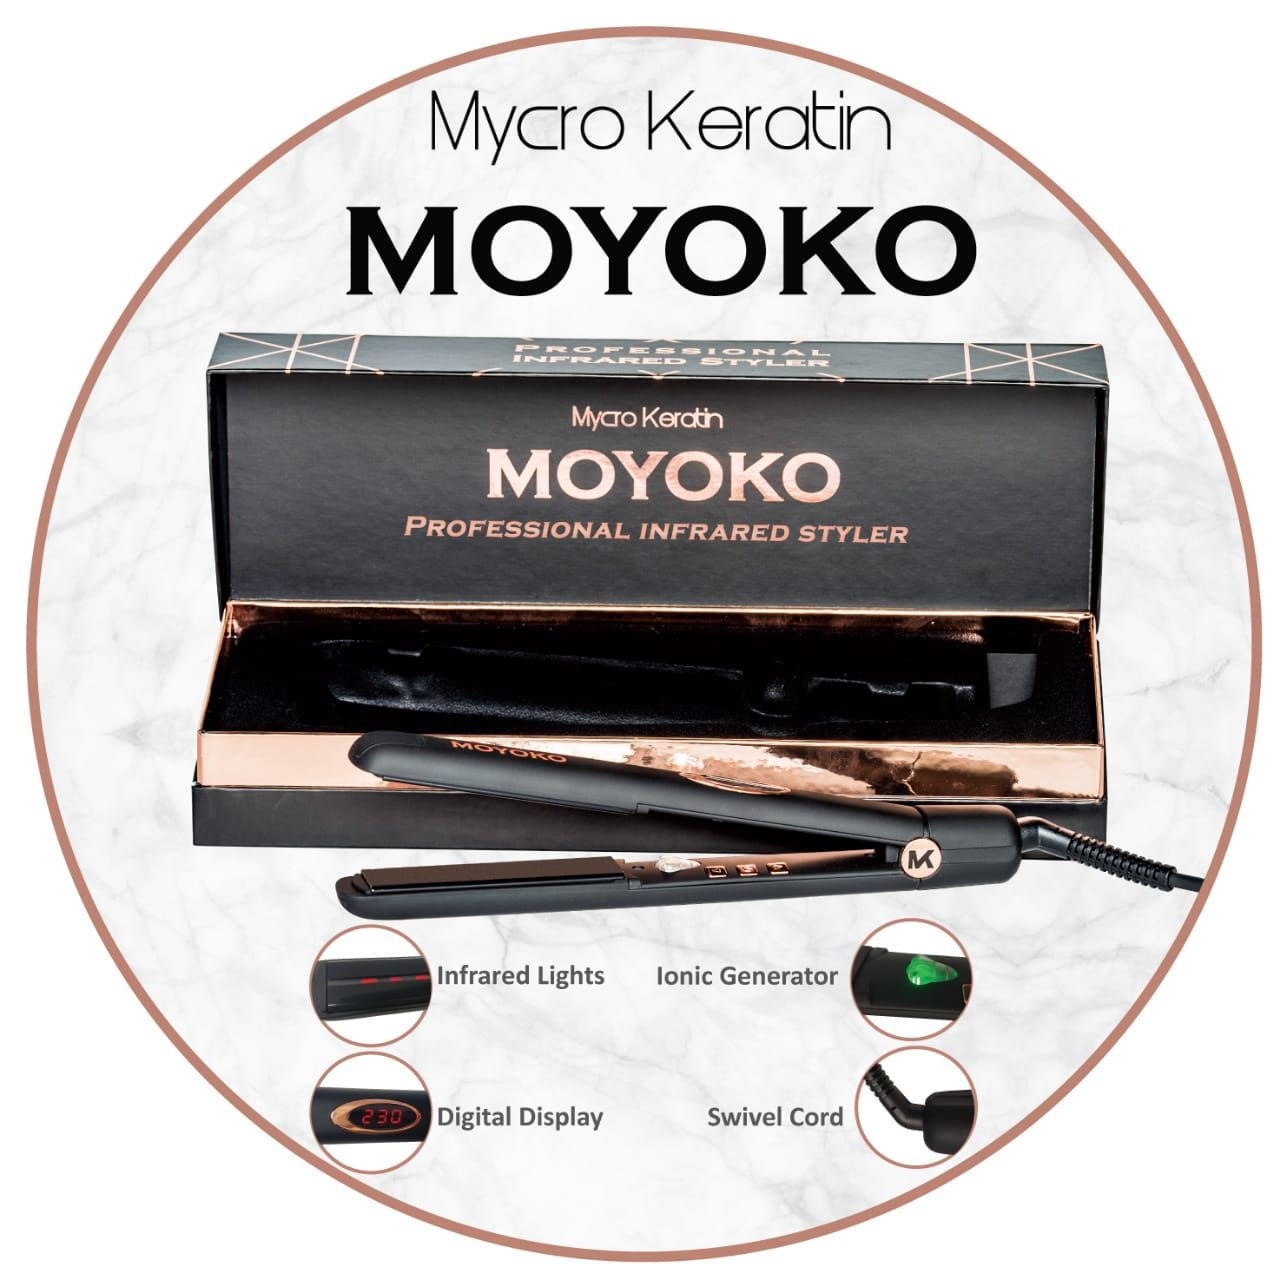 THICK PLATE MOYOKO INFARED HAIR IRON THIN PLATE MOYOKO HAIR IRON STYLER MOYOKO FLAT HAIR IRON STYLER MOYOKA INFARED MICRO KERATIN  HAIR IRON STRAIGHTENER AVAILABLE AT SALON CLEO 0315002353 MOYOKO CHEAPEST DEAL IN DURAN SALON CLEO 0315009998